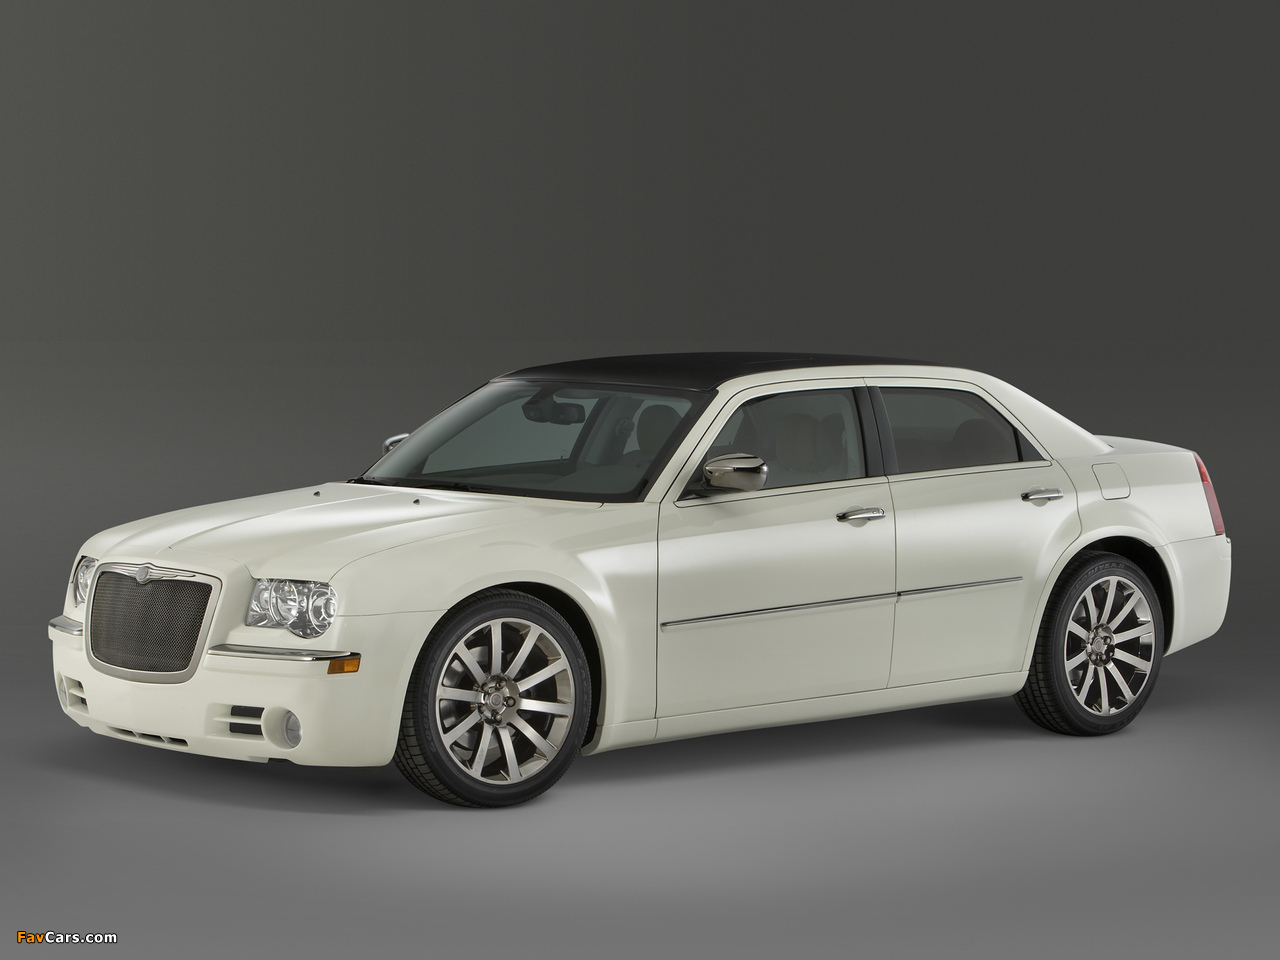 Chrysler 300 EcoStyle Concept (LX) 2010 wallpapers (1280 x 960)